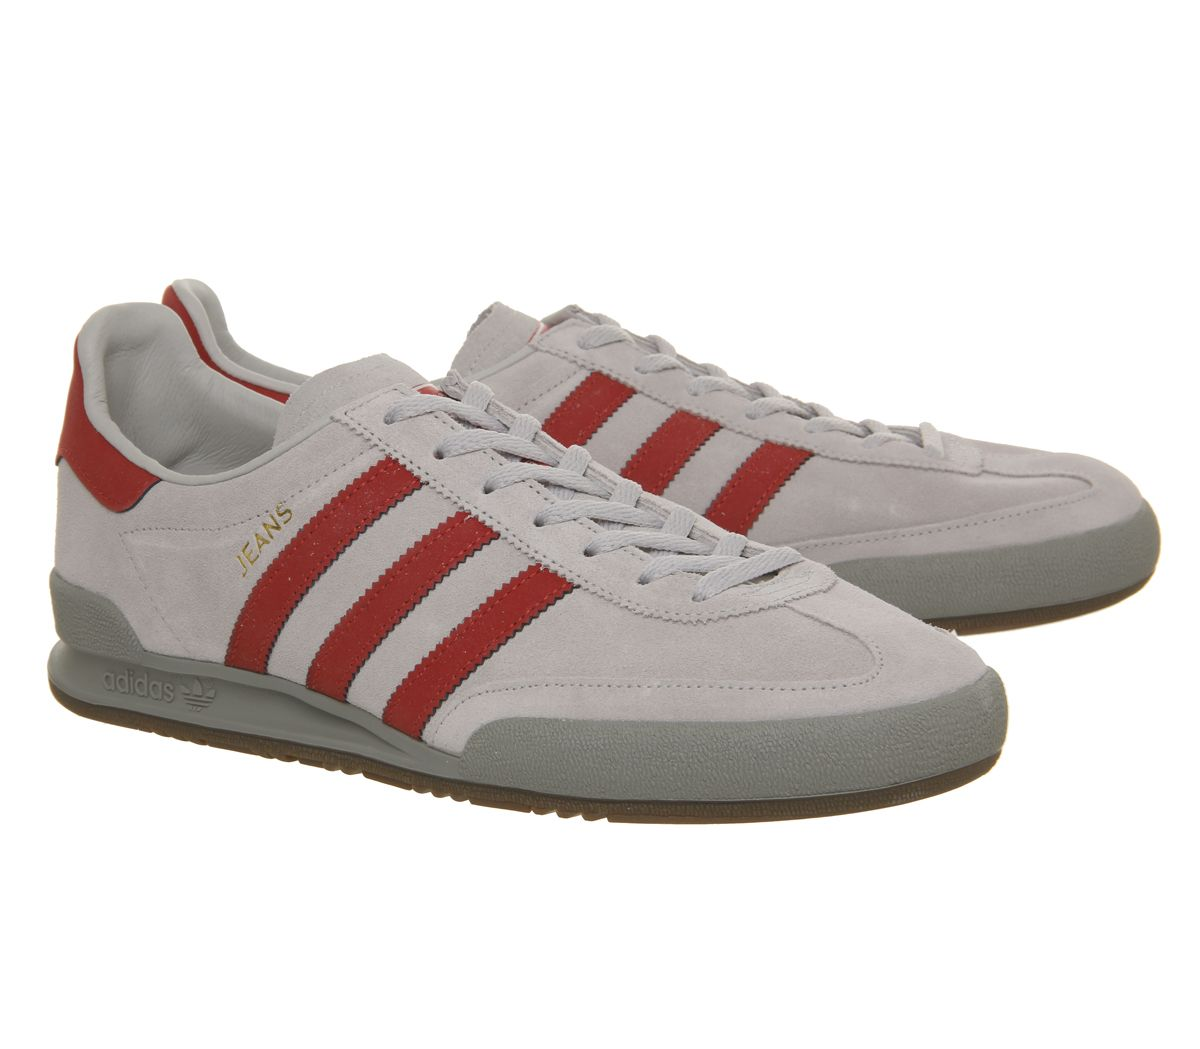 142bf02f65319a Sentinel Adidas Jeans Trainers Grey Two Scarlet Solid Grey Trainers Shoes